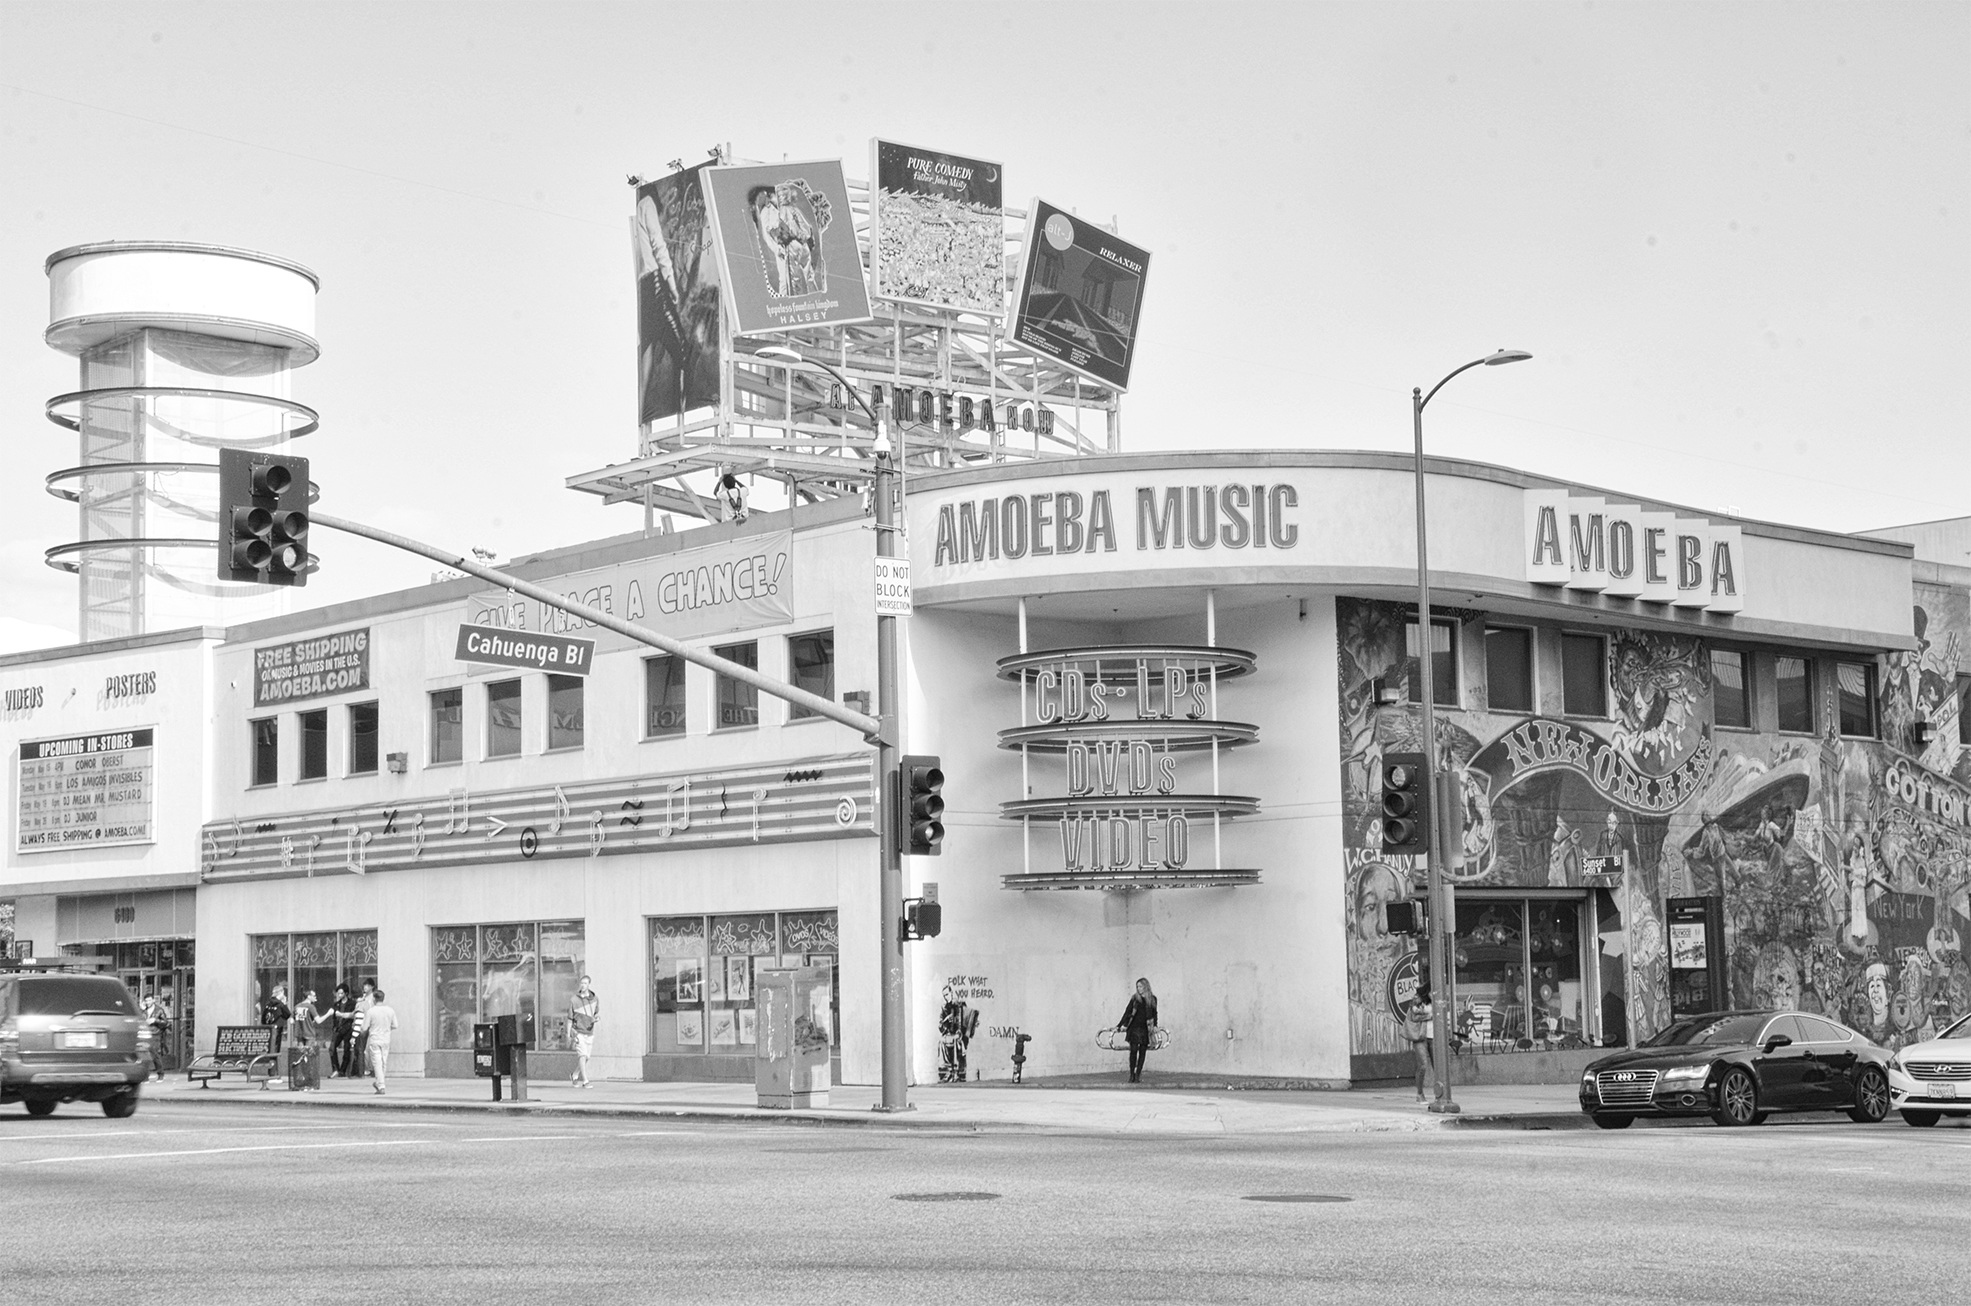 09_Last-seen-at-Amoeba-Music,-Sunset-Blvd.-Cahuenga-Blvd.,-Hollywood,-LA